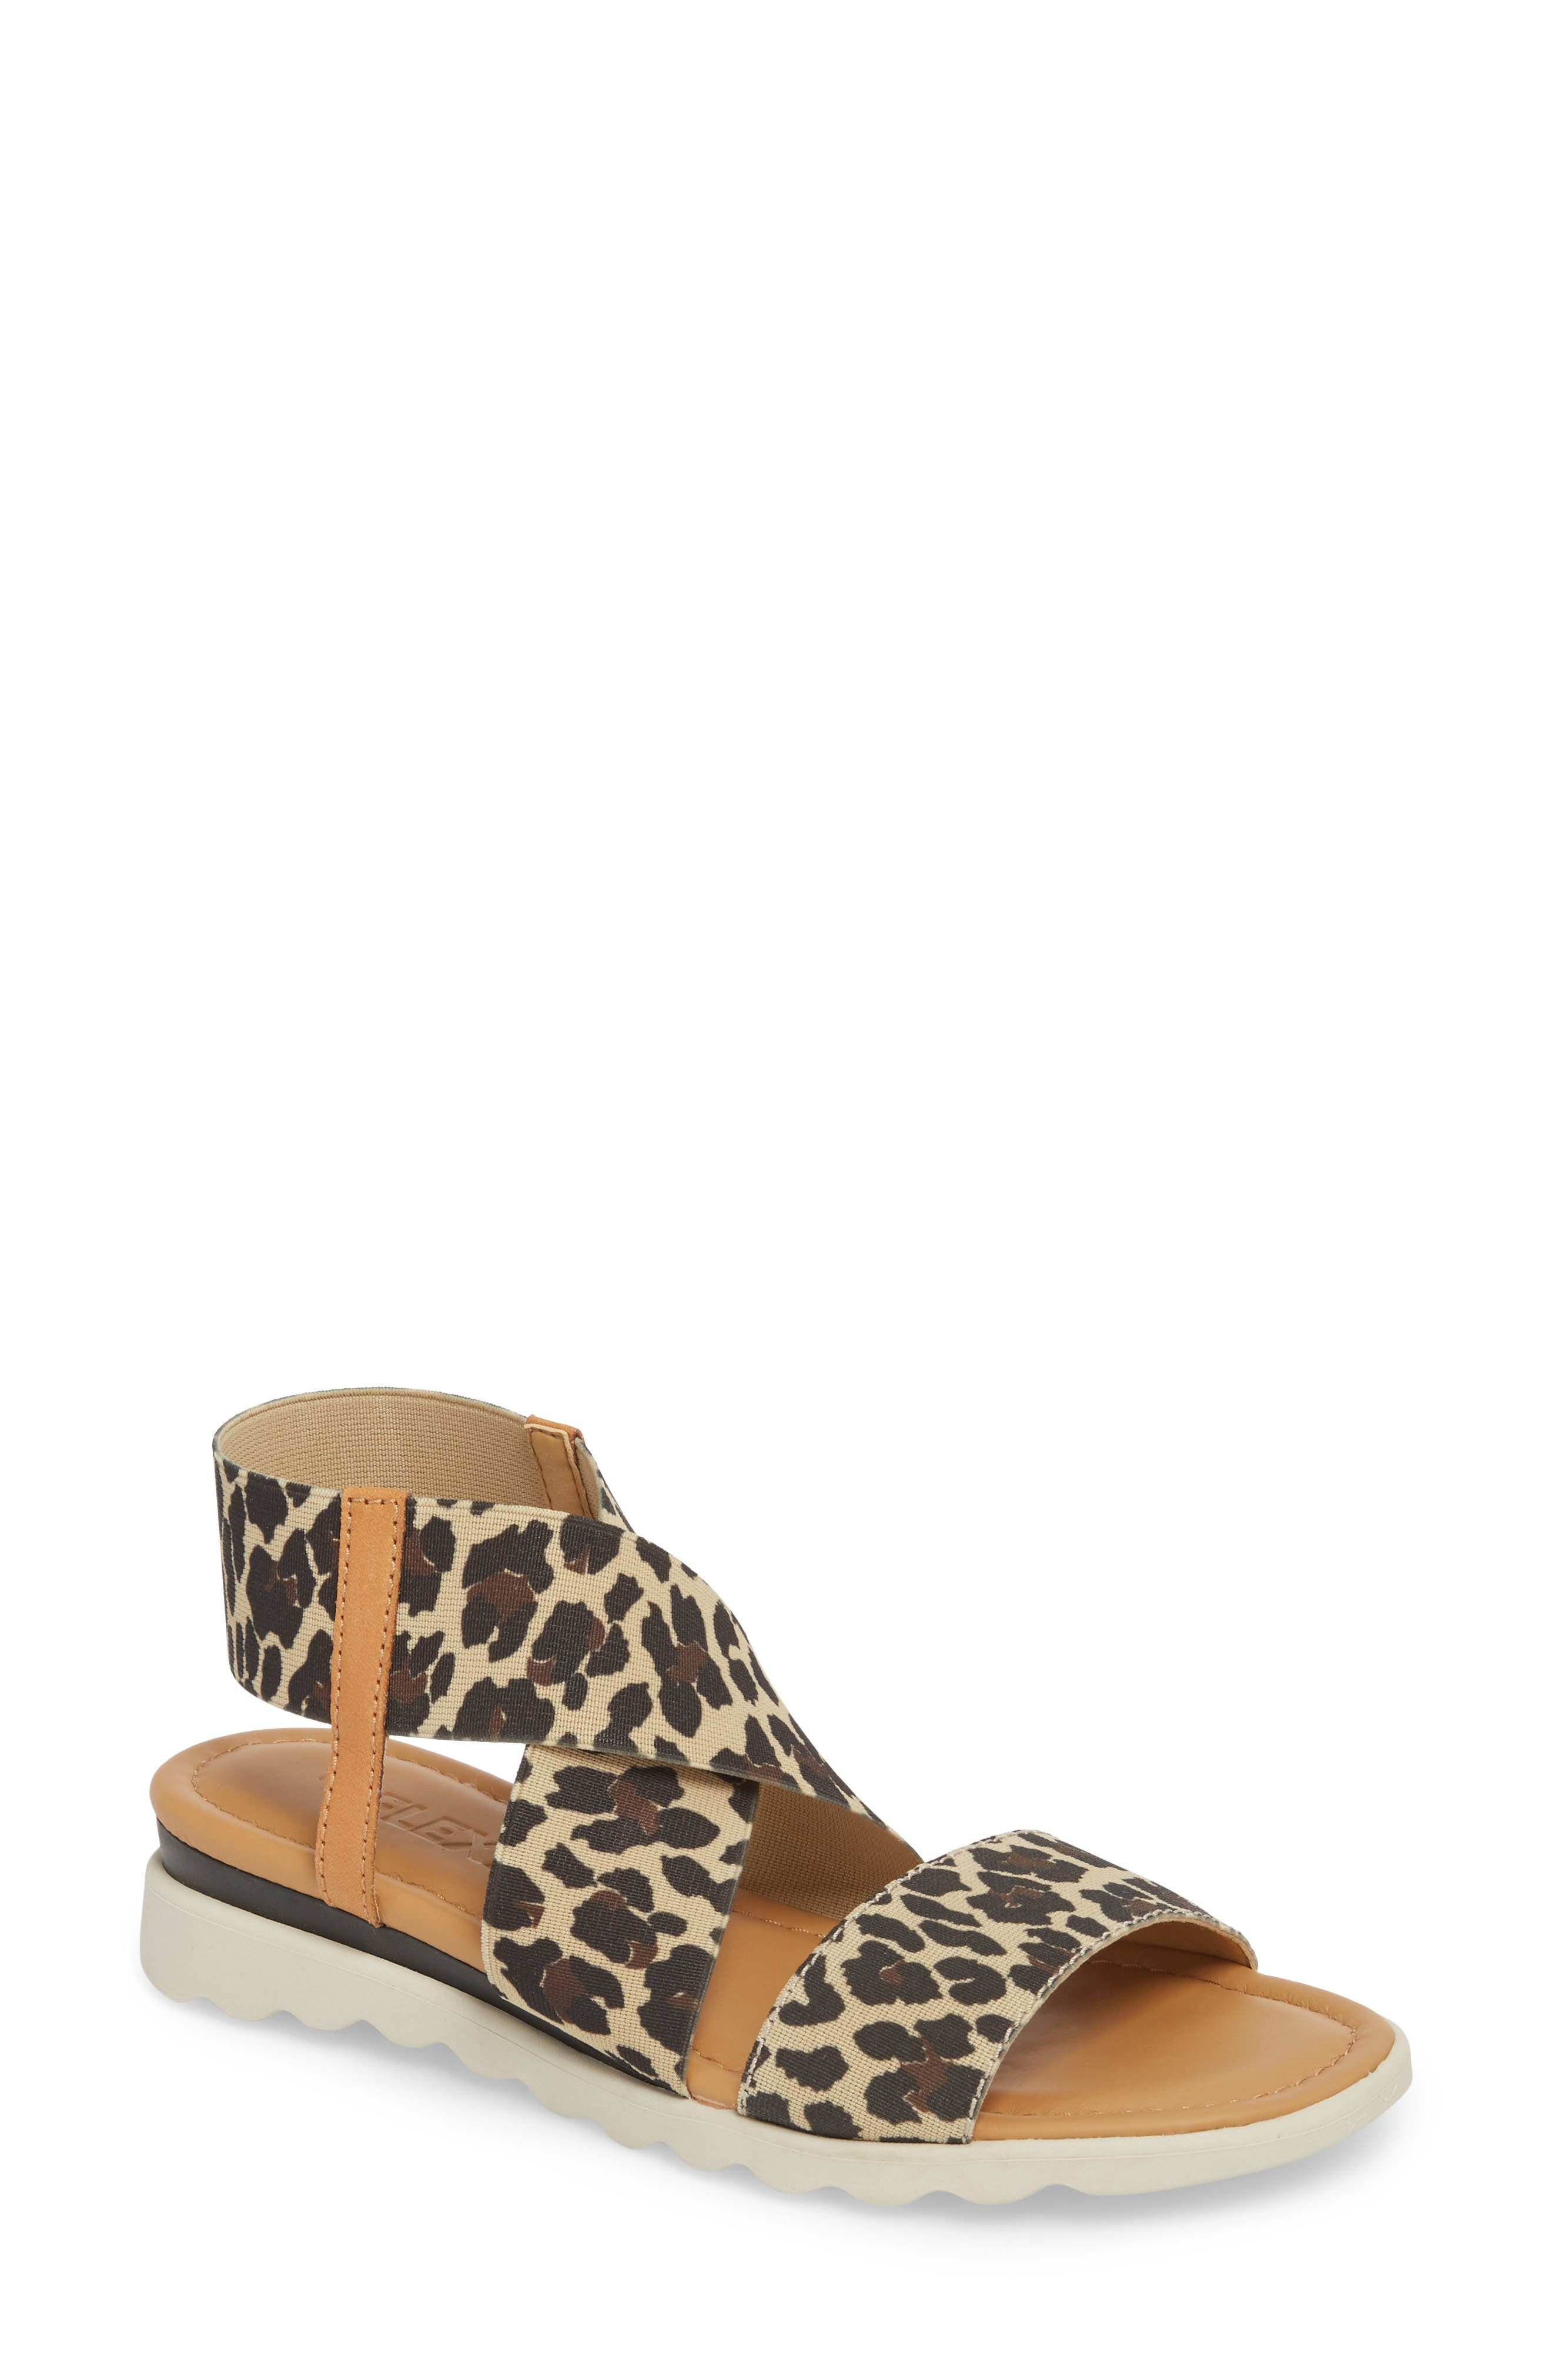 Extra Sandal,                             Main thumbnail 1, color,                             DUNE LEOPARD FABRIC